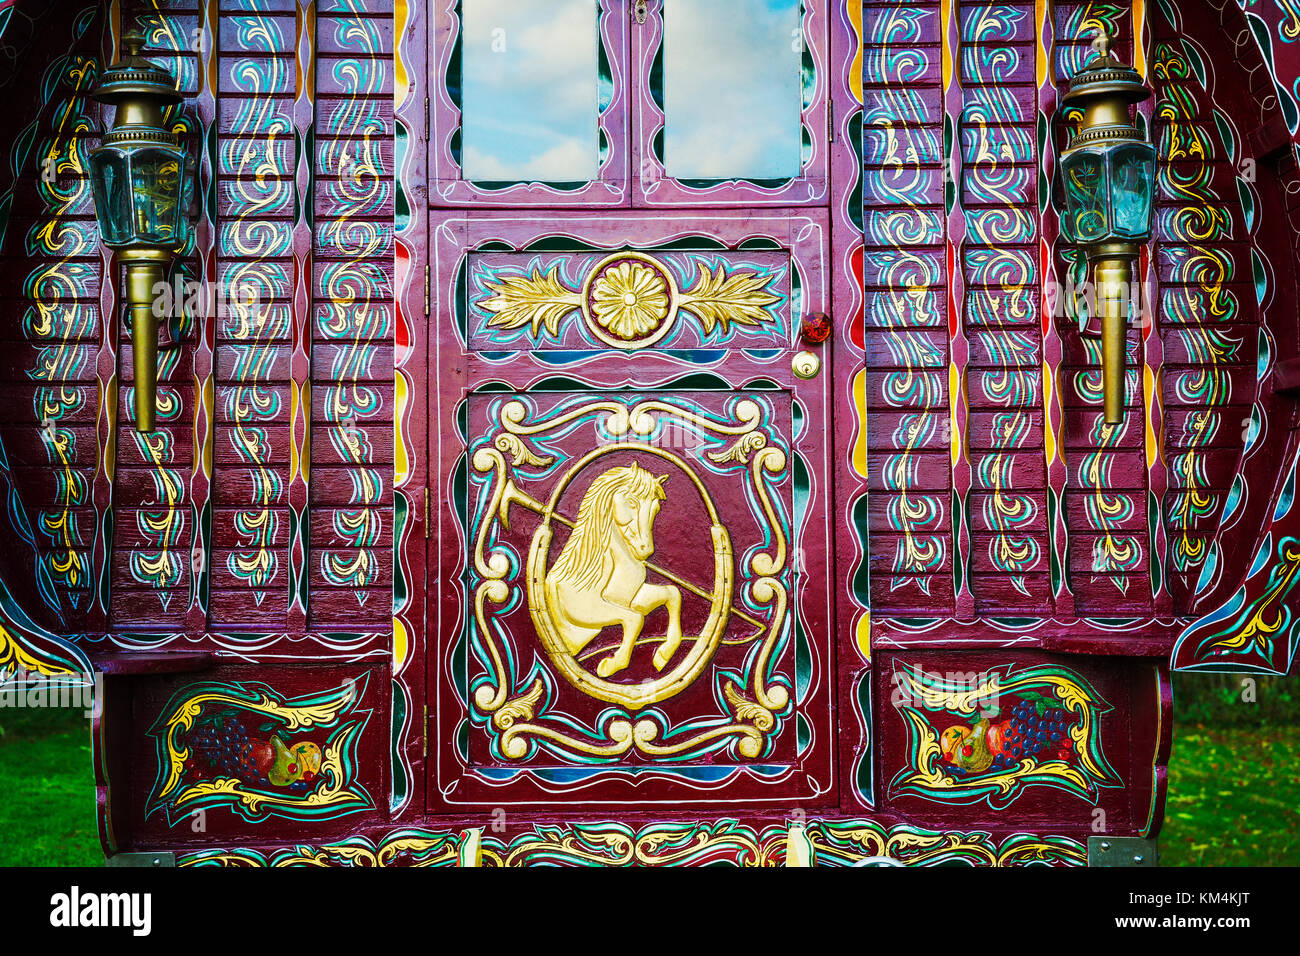 The rear of a traditionally decorated and painted gypsy caravan,  door and windows. - Stock Image